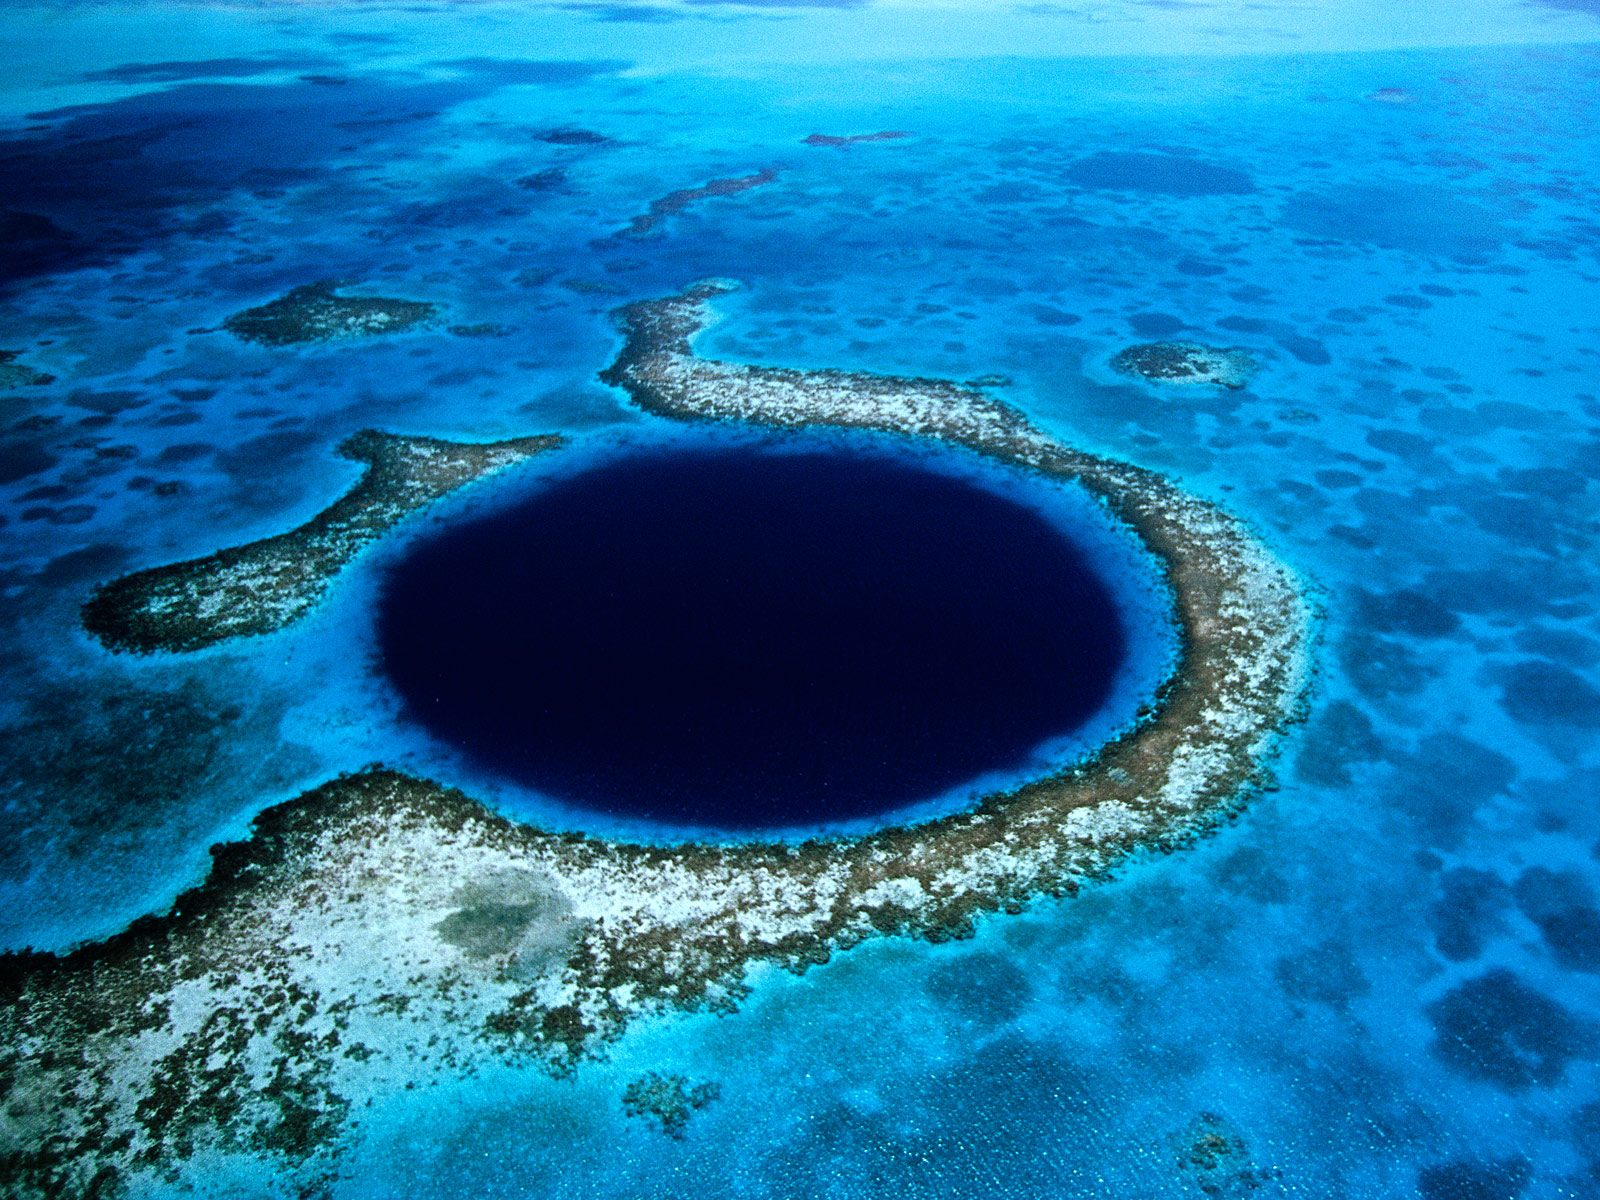 Encyclopedia 9: The biggest hole in the world